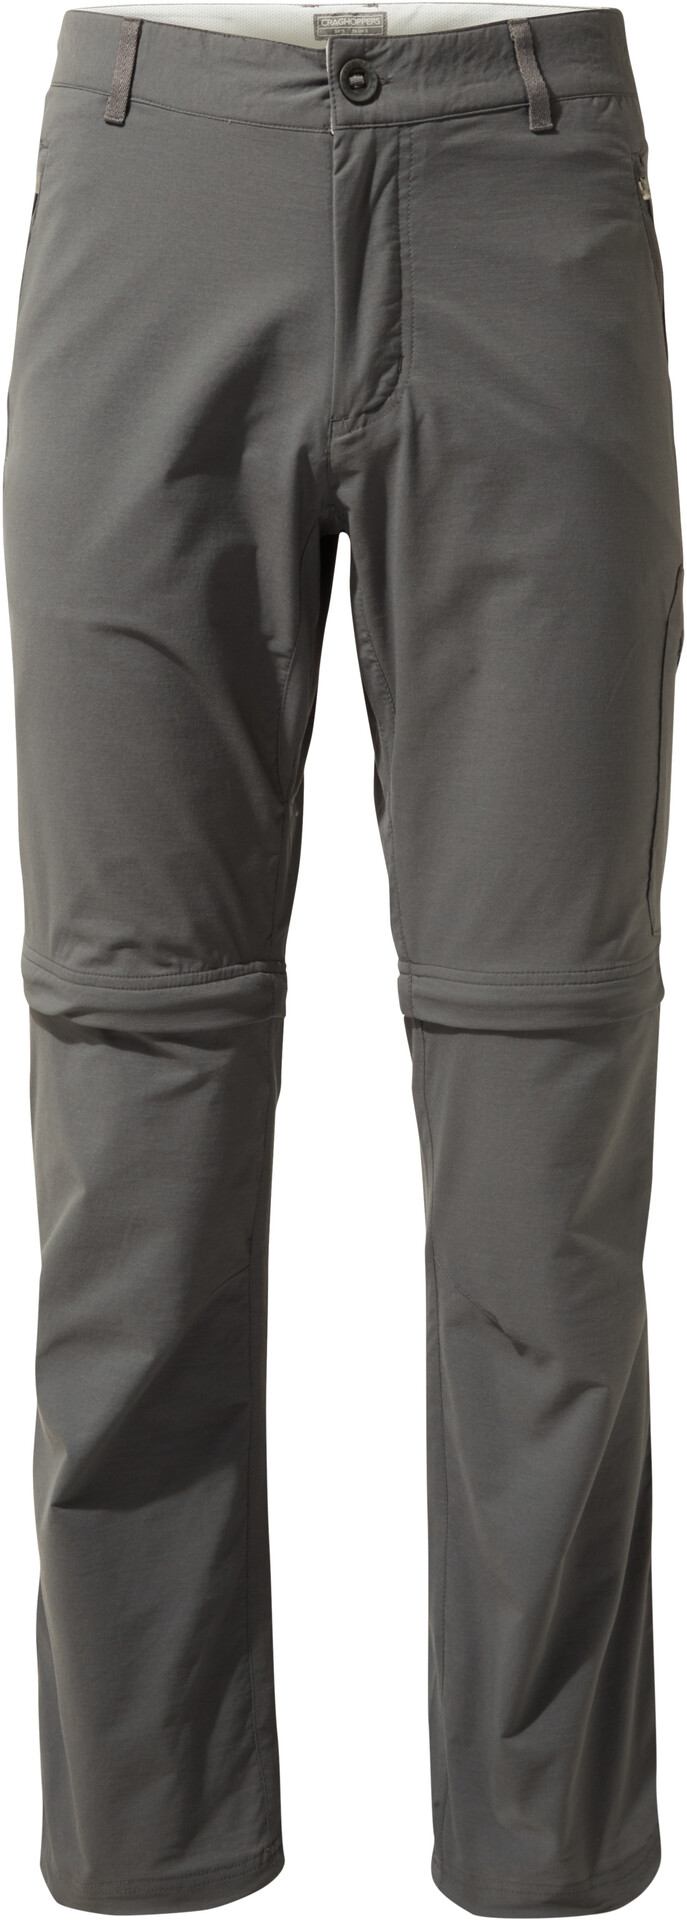 Craghoppers Steall Extensible Pantalon imperméable